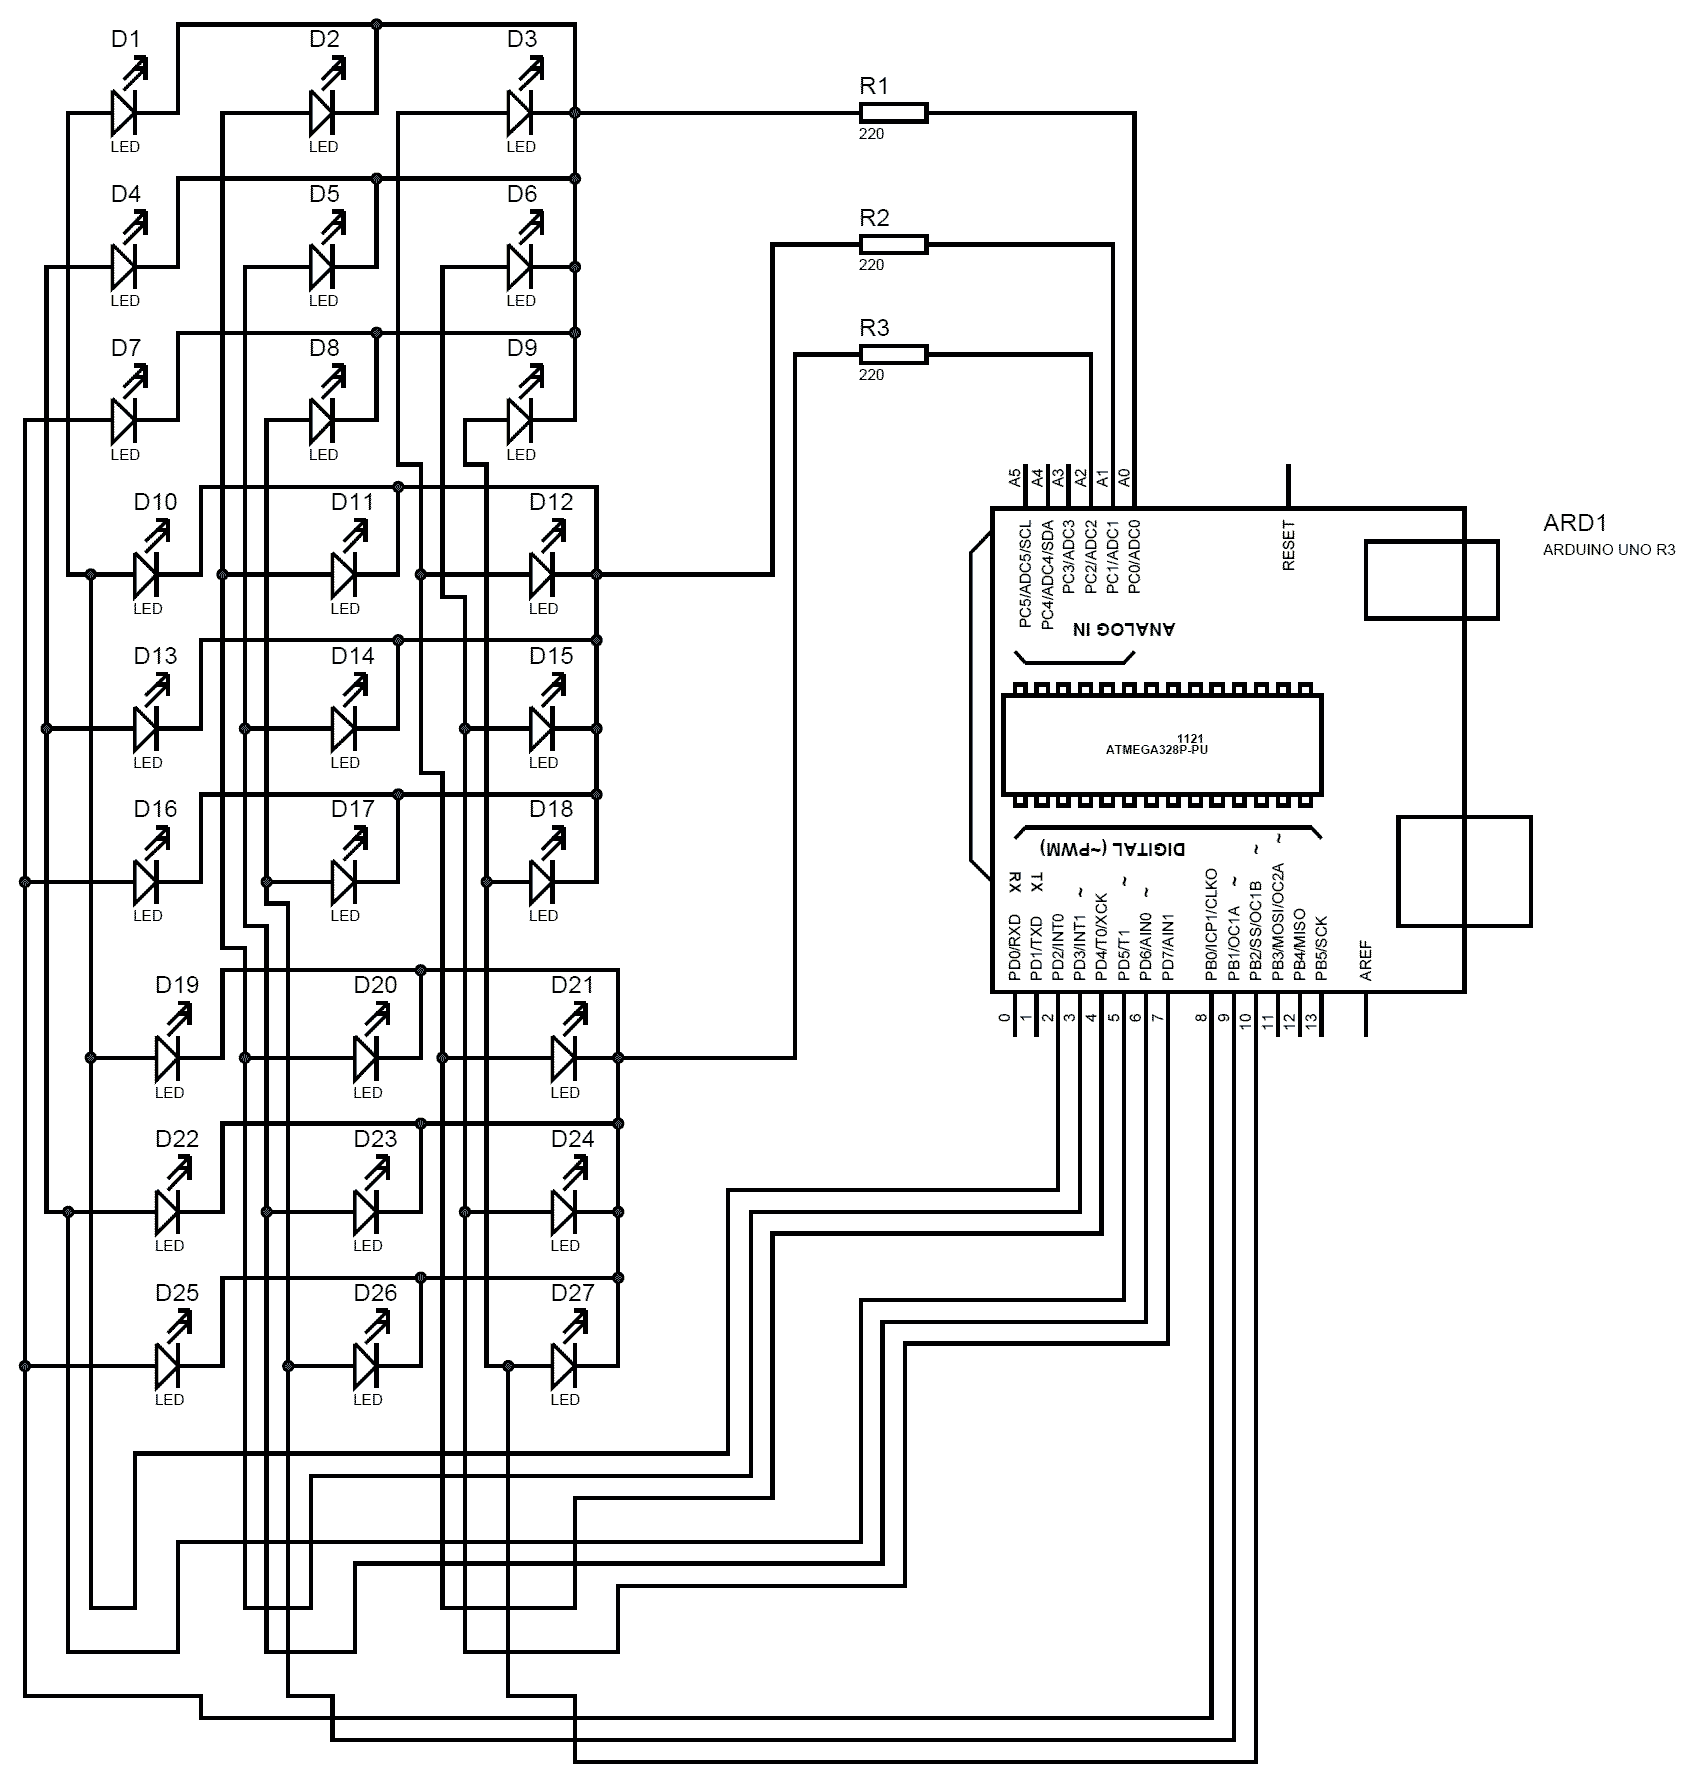 4ft t8 led wiring diagram